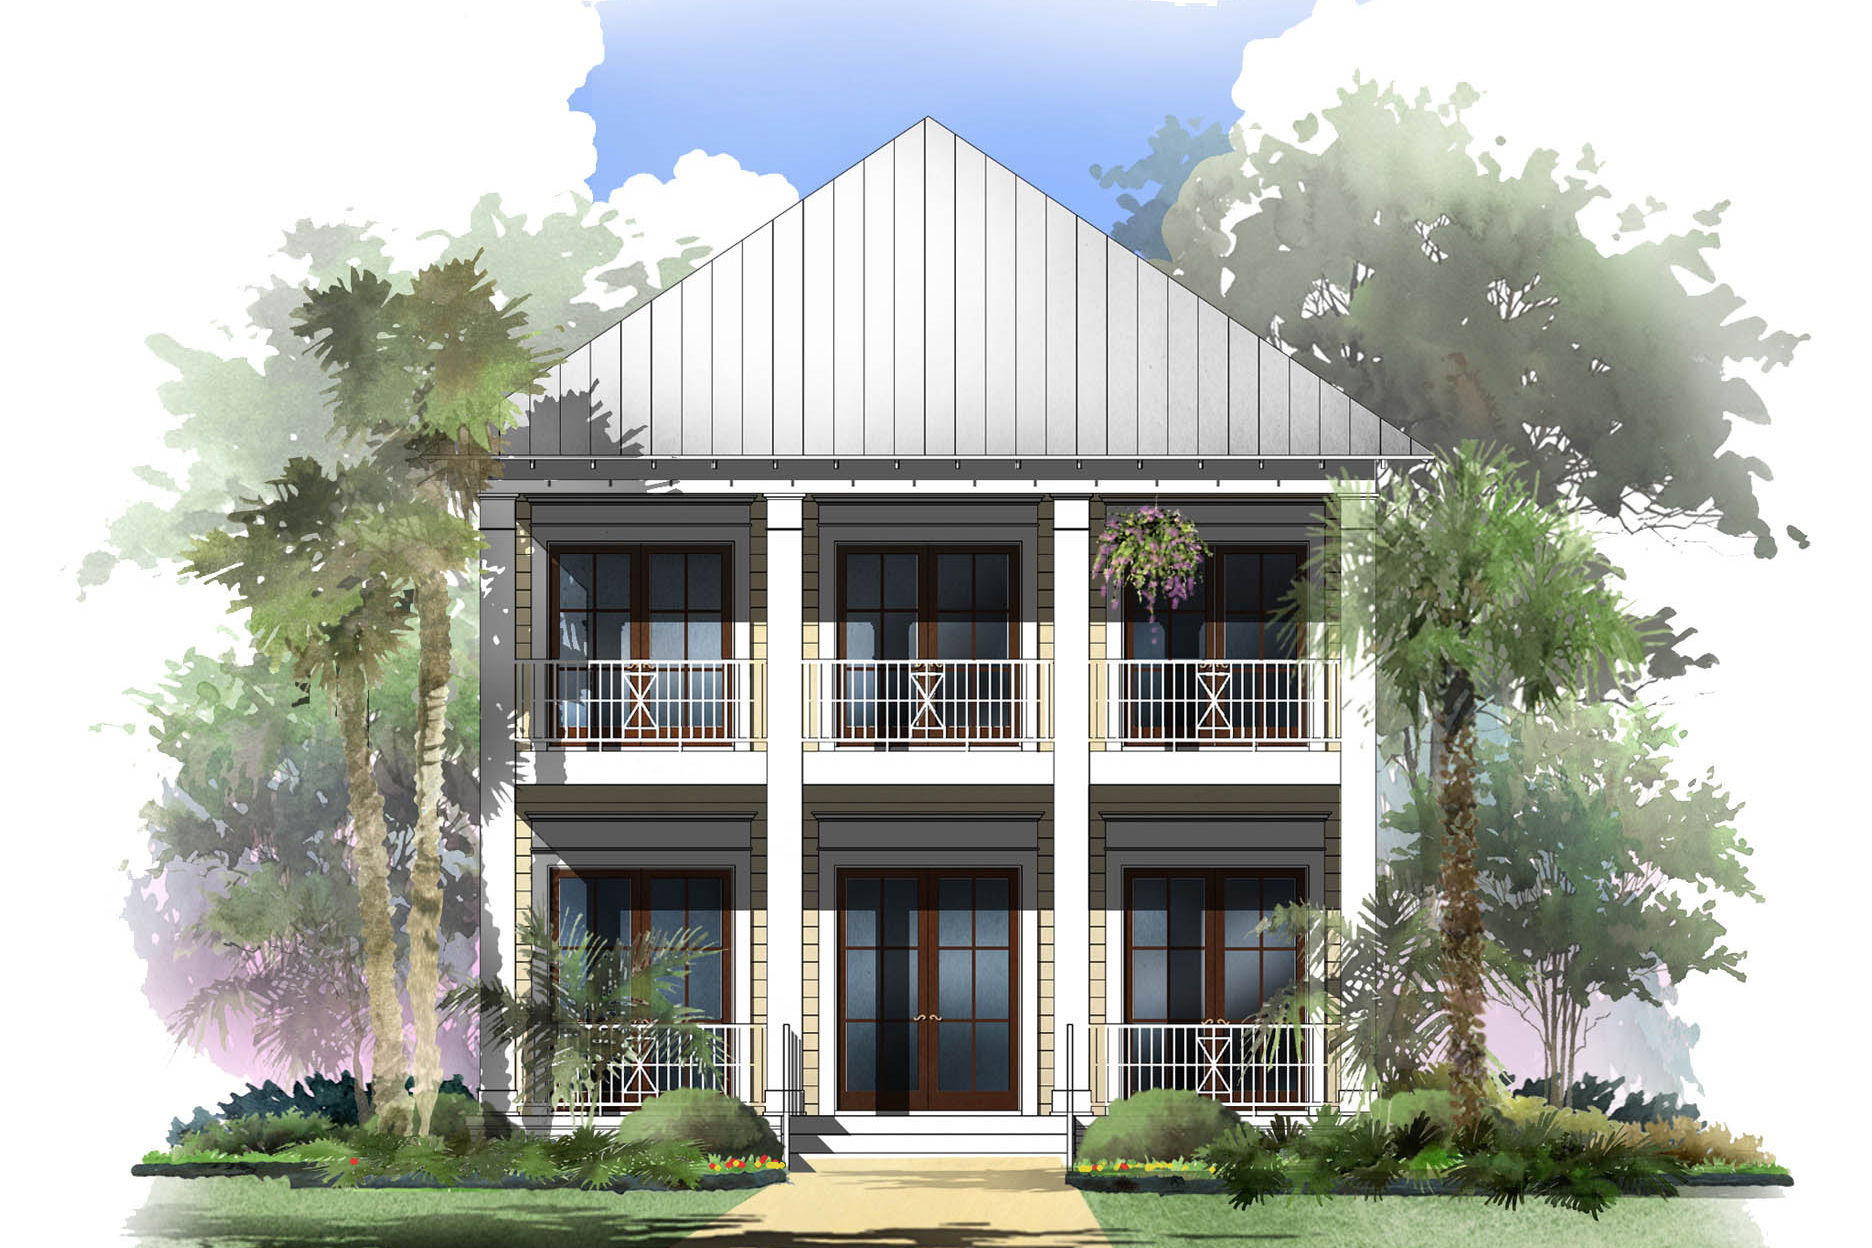 Coastal house plan 142 1125 4 bedrm 2888 sq ft home for Florida house plans for sale